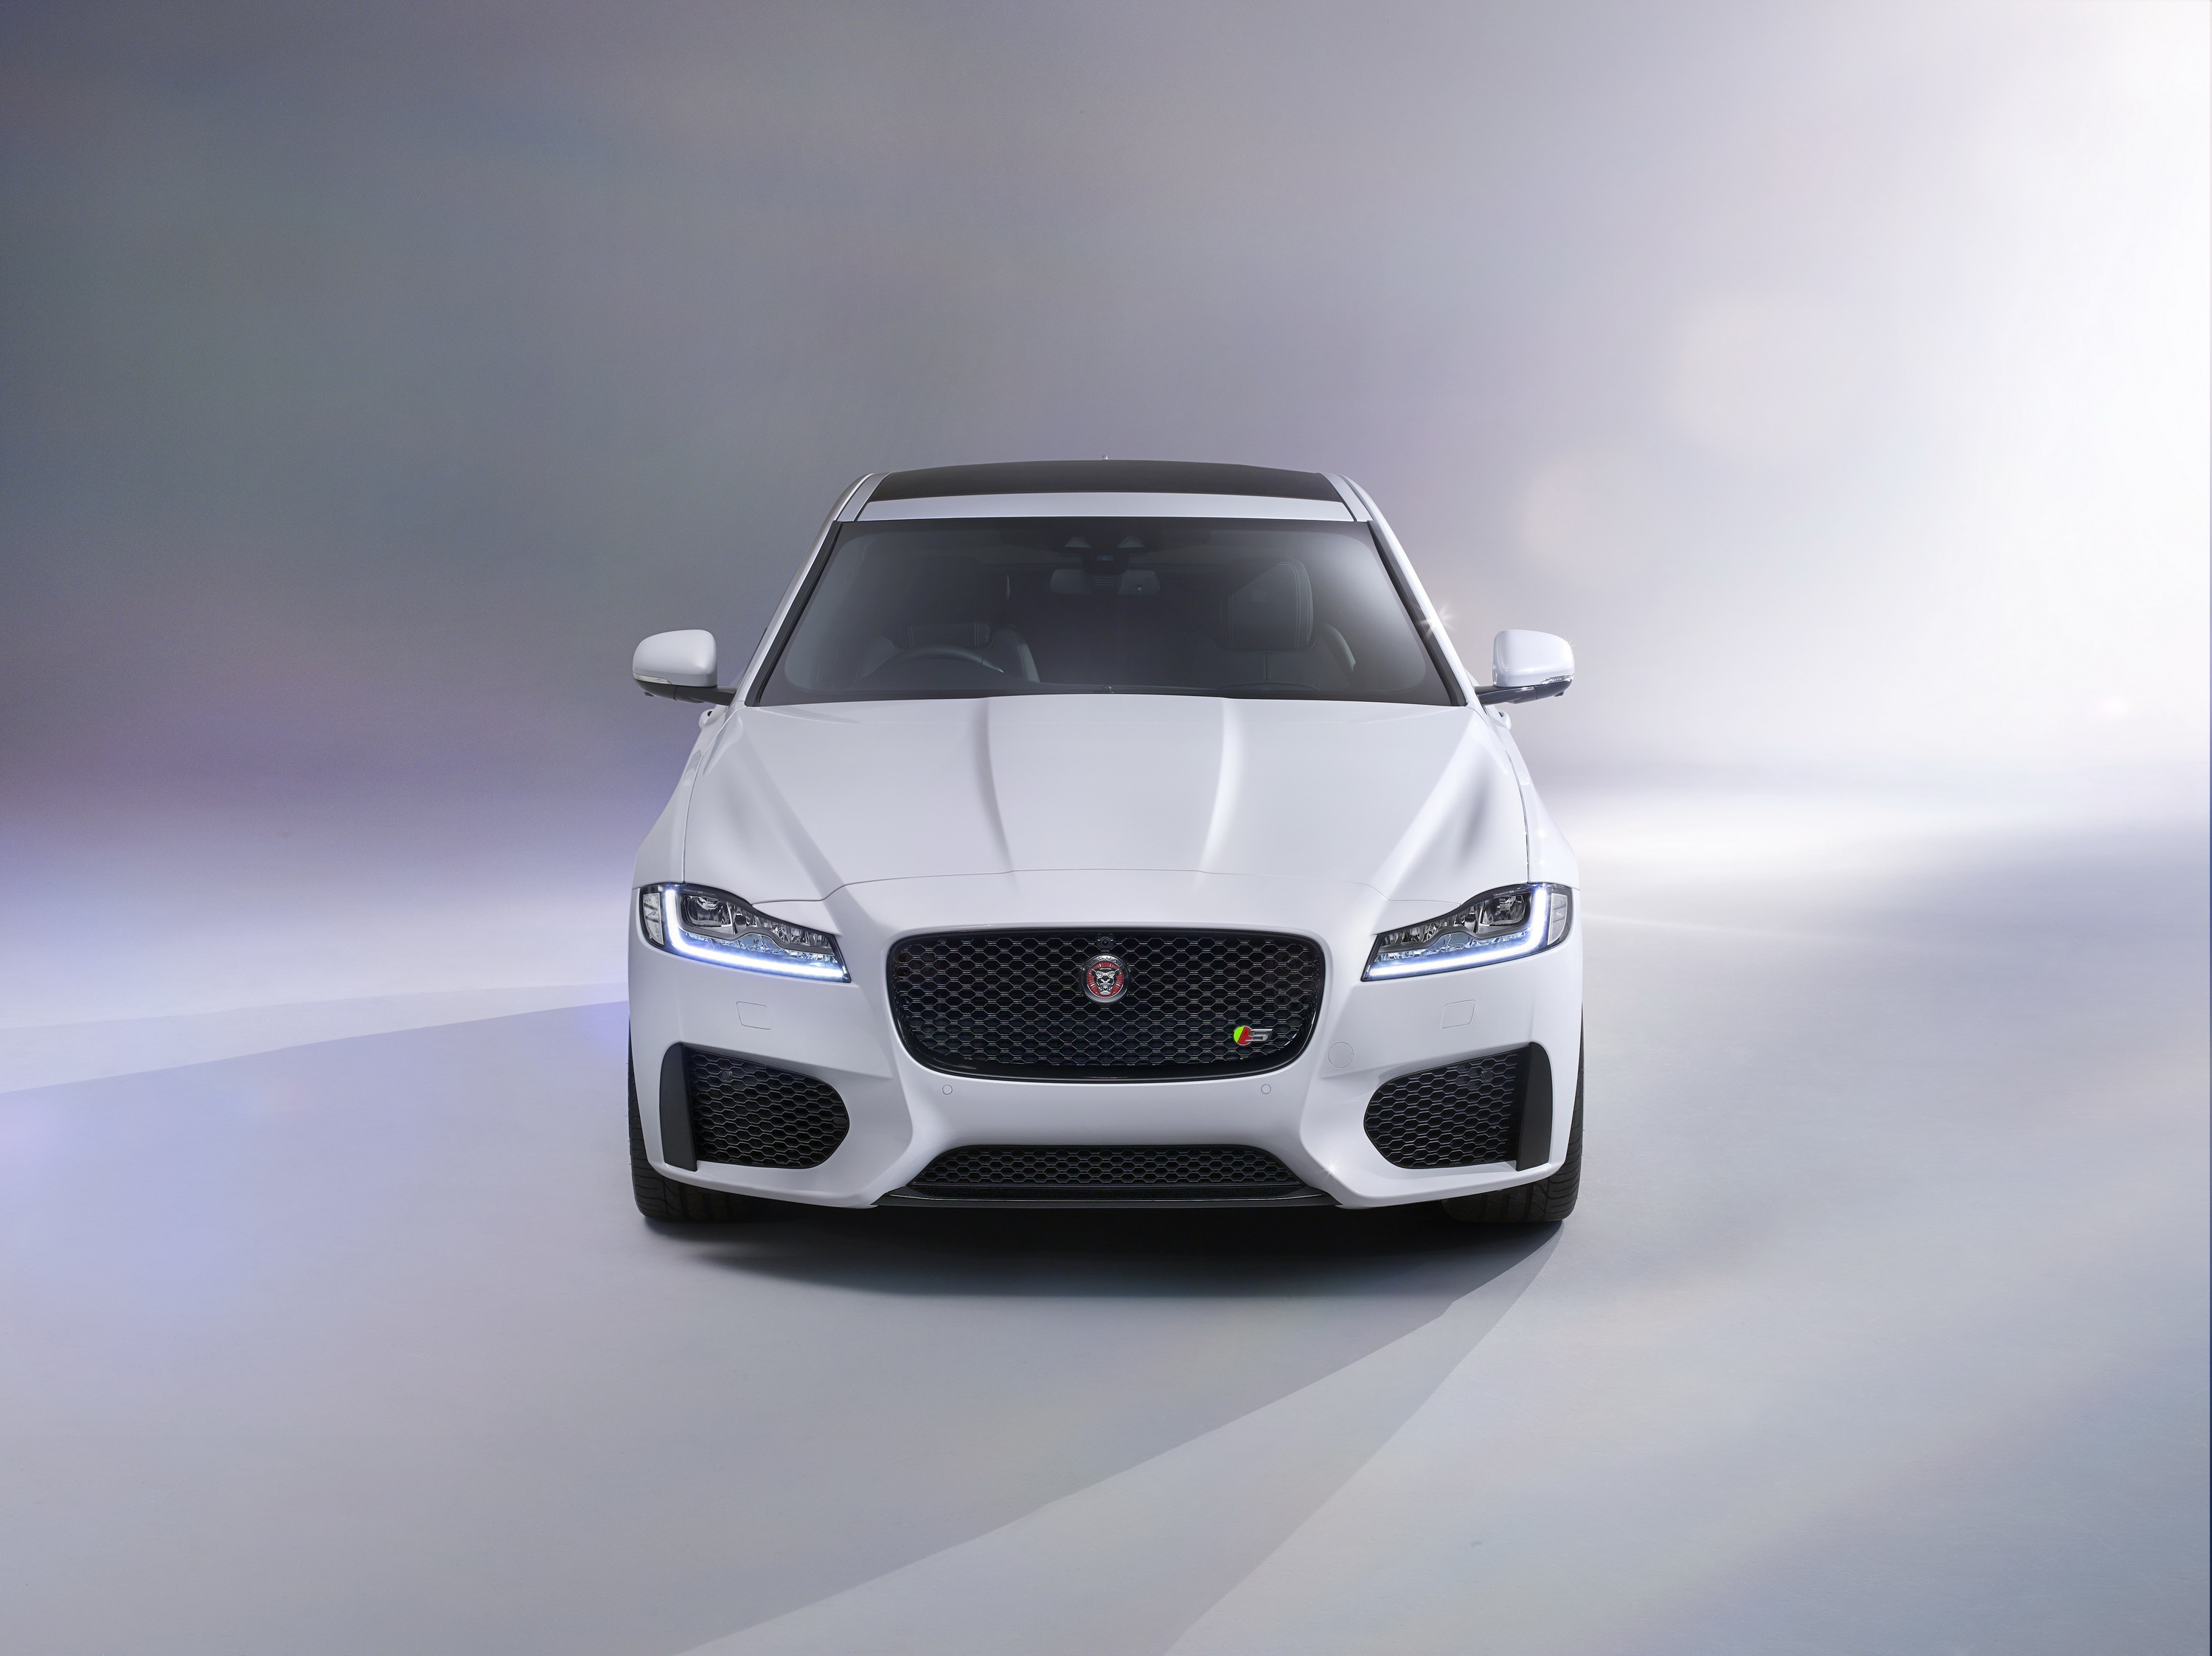 gallery awd jag for autoblog photos sale new xf jaguar york photo